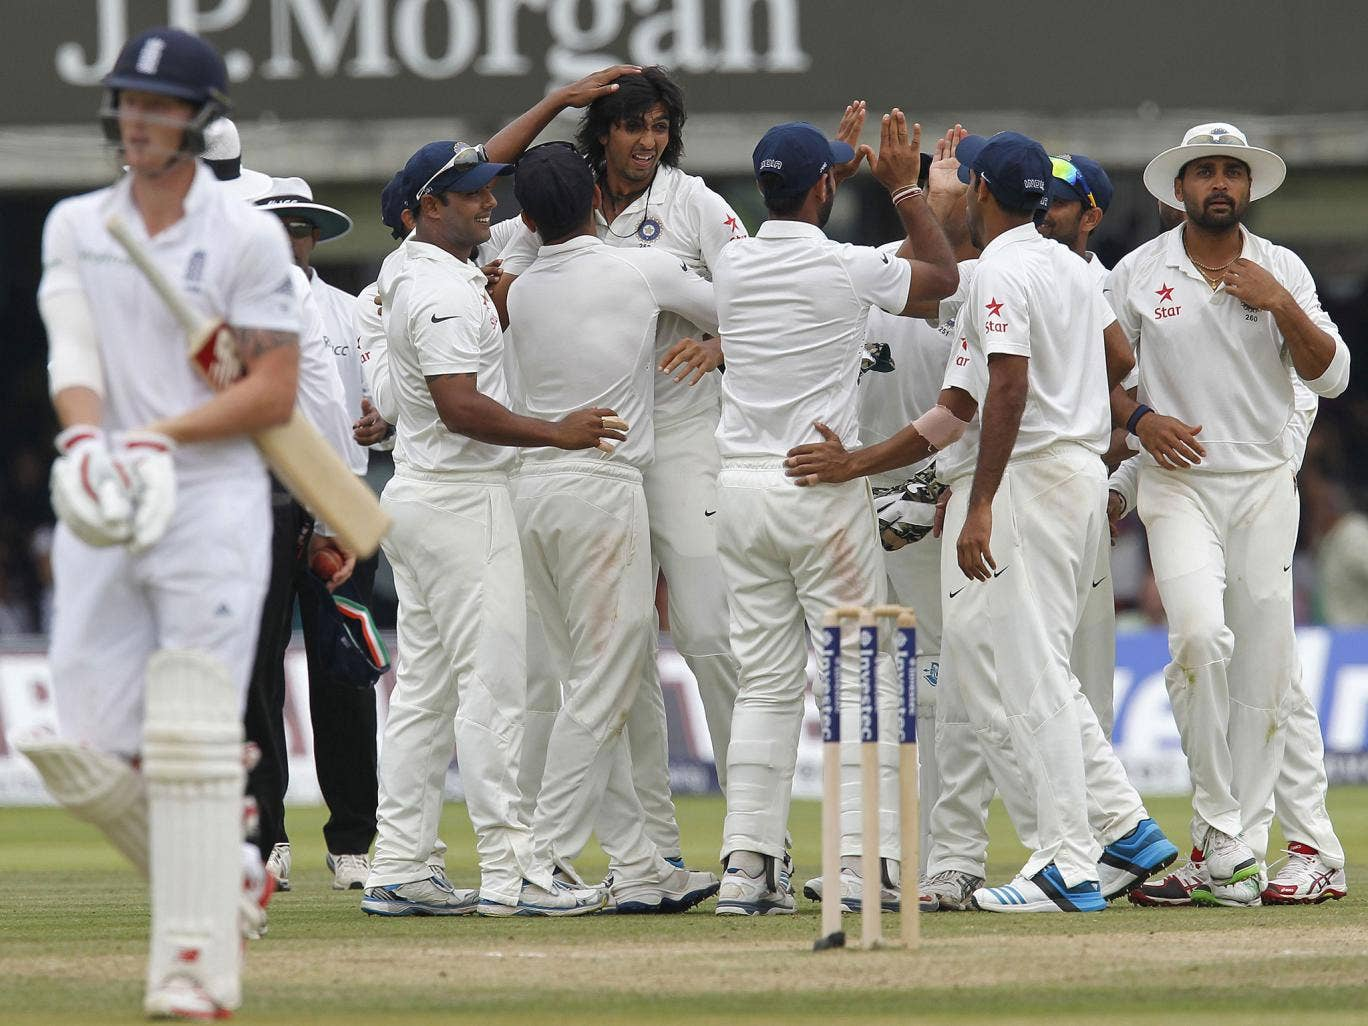 Ben Stokes trudges off after his latest batting failure for England as Ishant Sharma celebrates one of his seven wickets